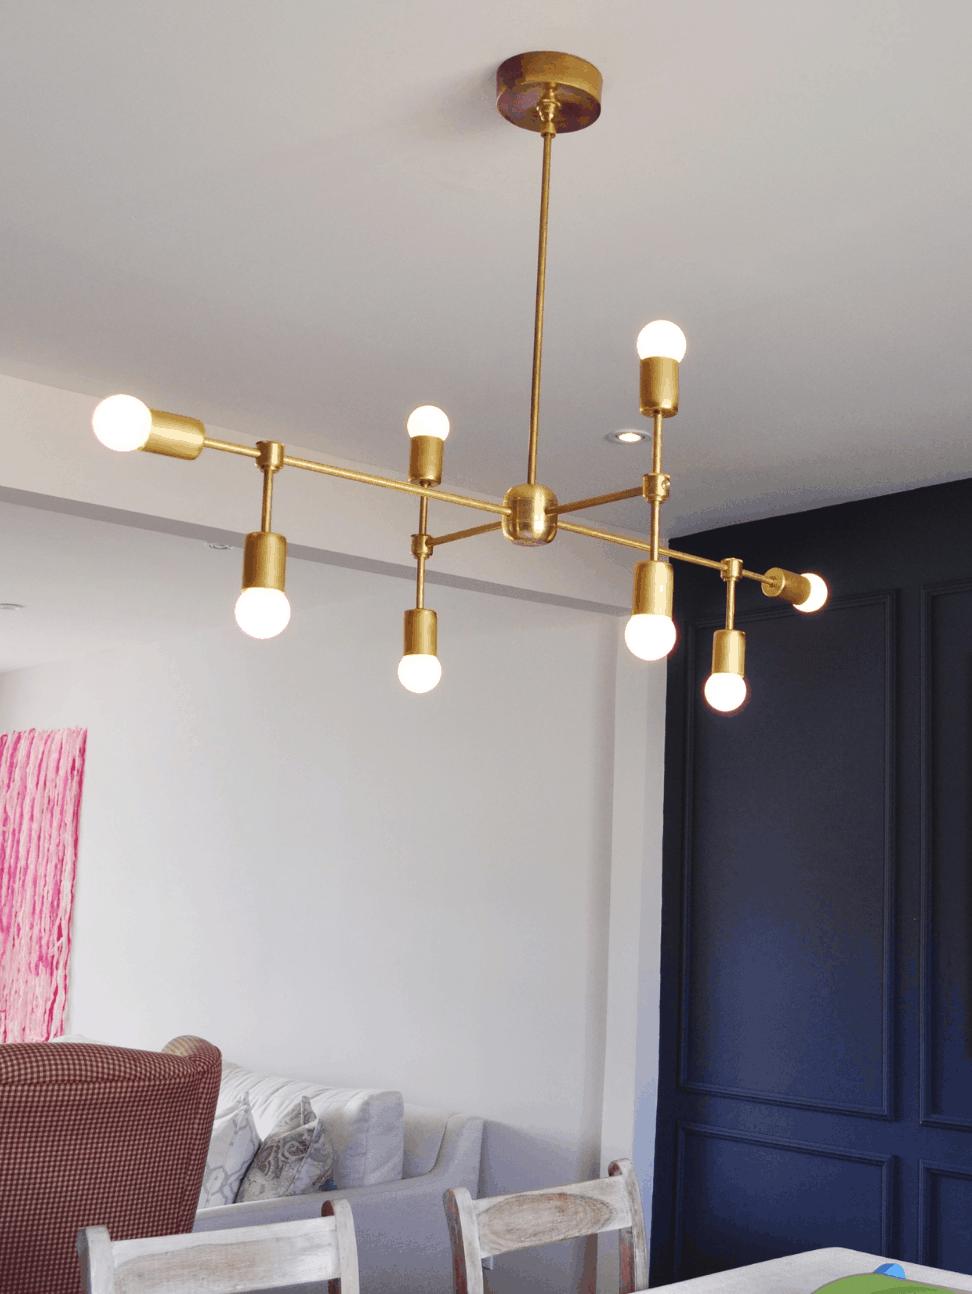 Thinking about making your own light fixture? You've gotta check out these DIY Modern Light Fixtures you won't believe are handmade! Photo: DIY Brass Chandelier with Round Bulbs from VelvetToolbox